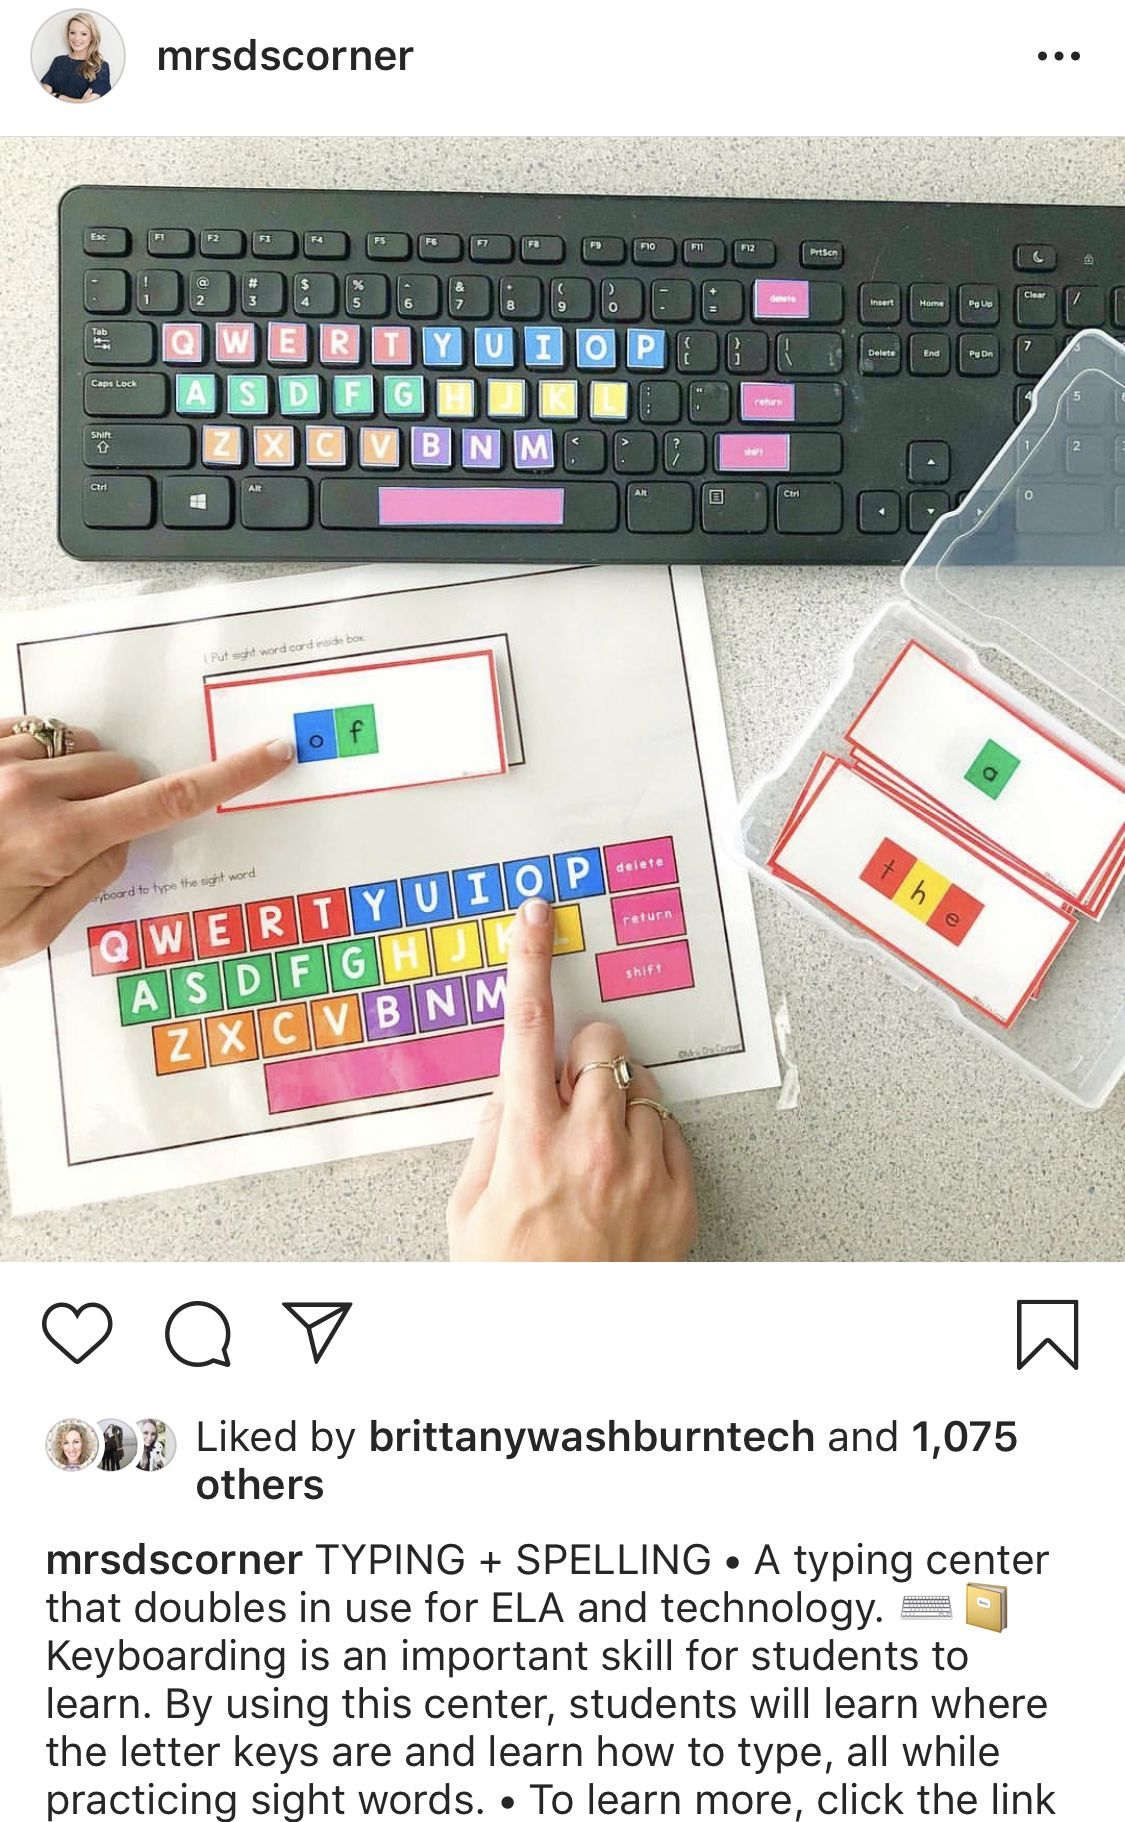 Typing And Spelling A Typing Center That Doubles In Use